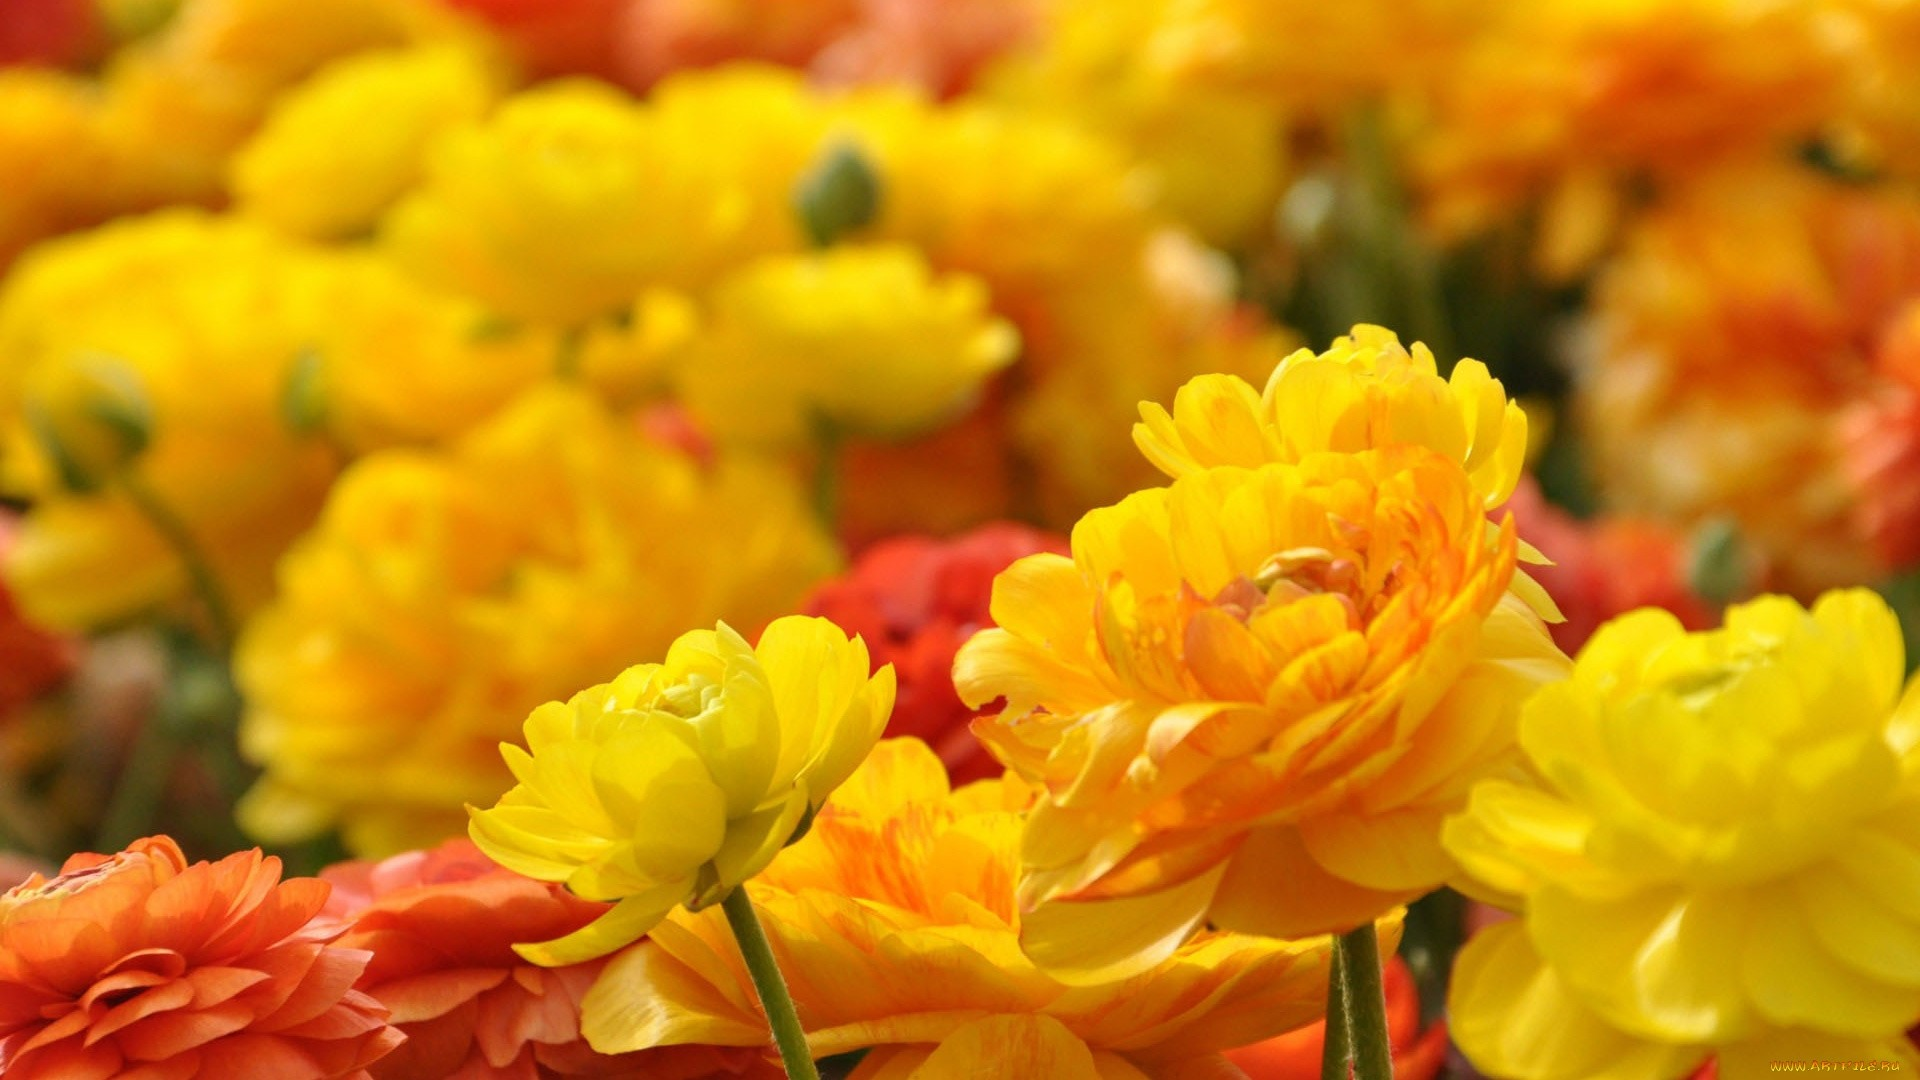 Yellow Flower HD Wallpaper